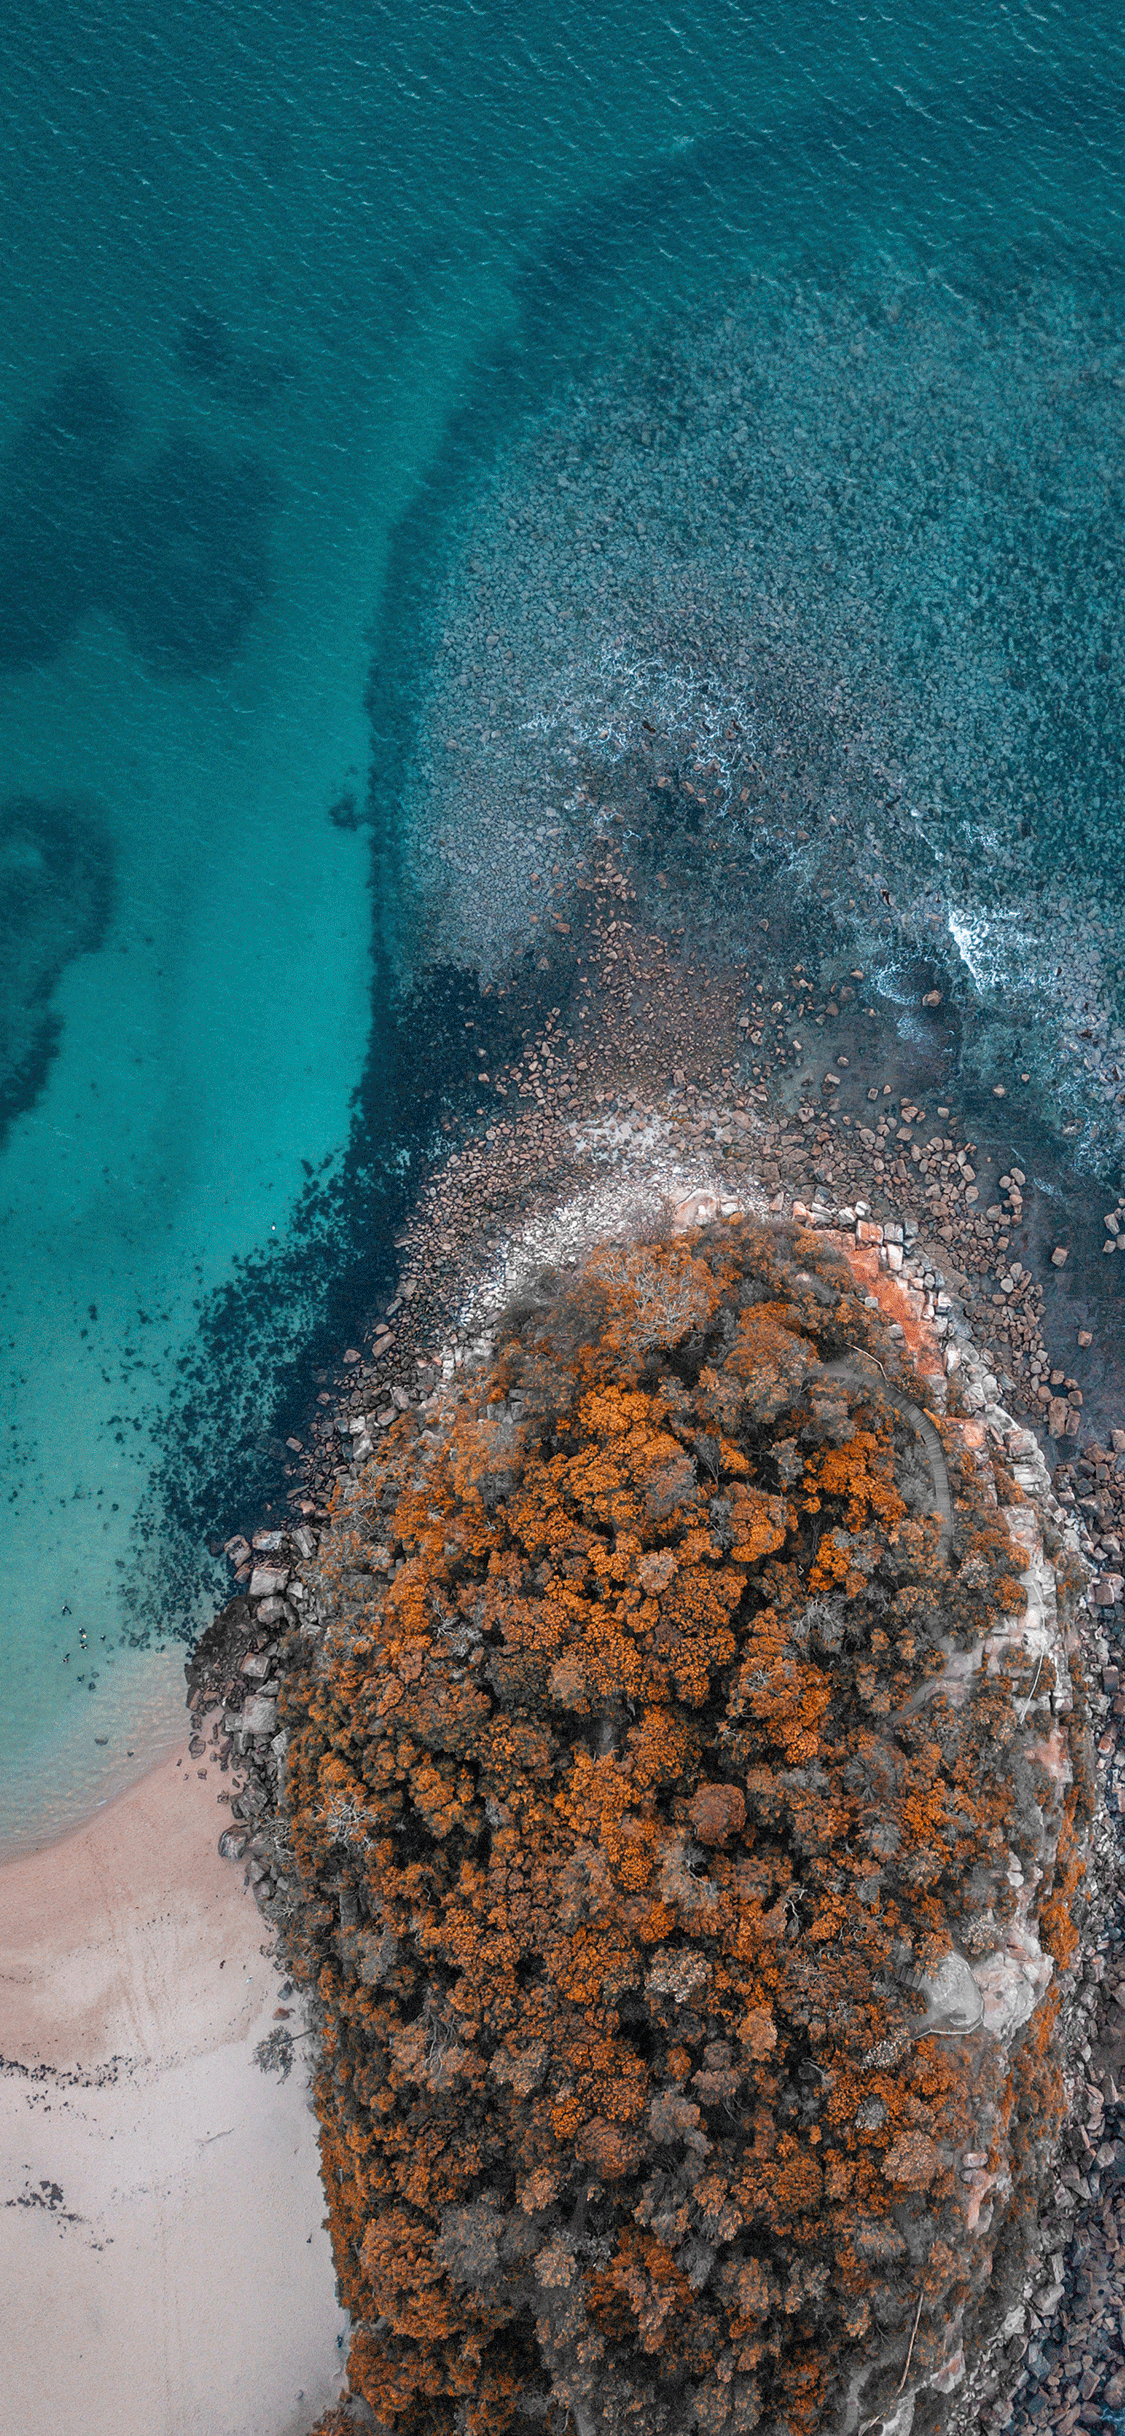 iPhone wallpaper aerial photos shelly beach Fonds d'écran iPhone du 18/09/2018